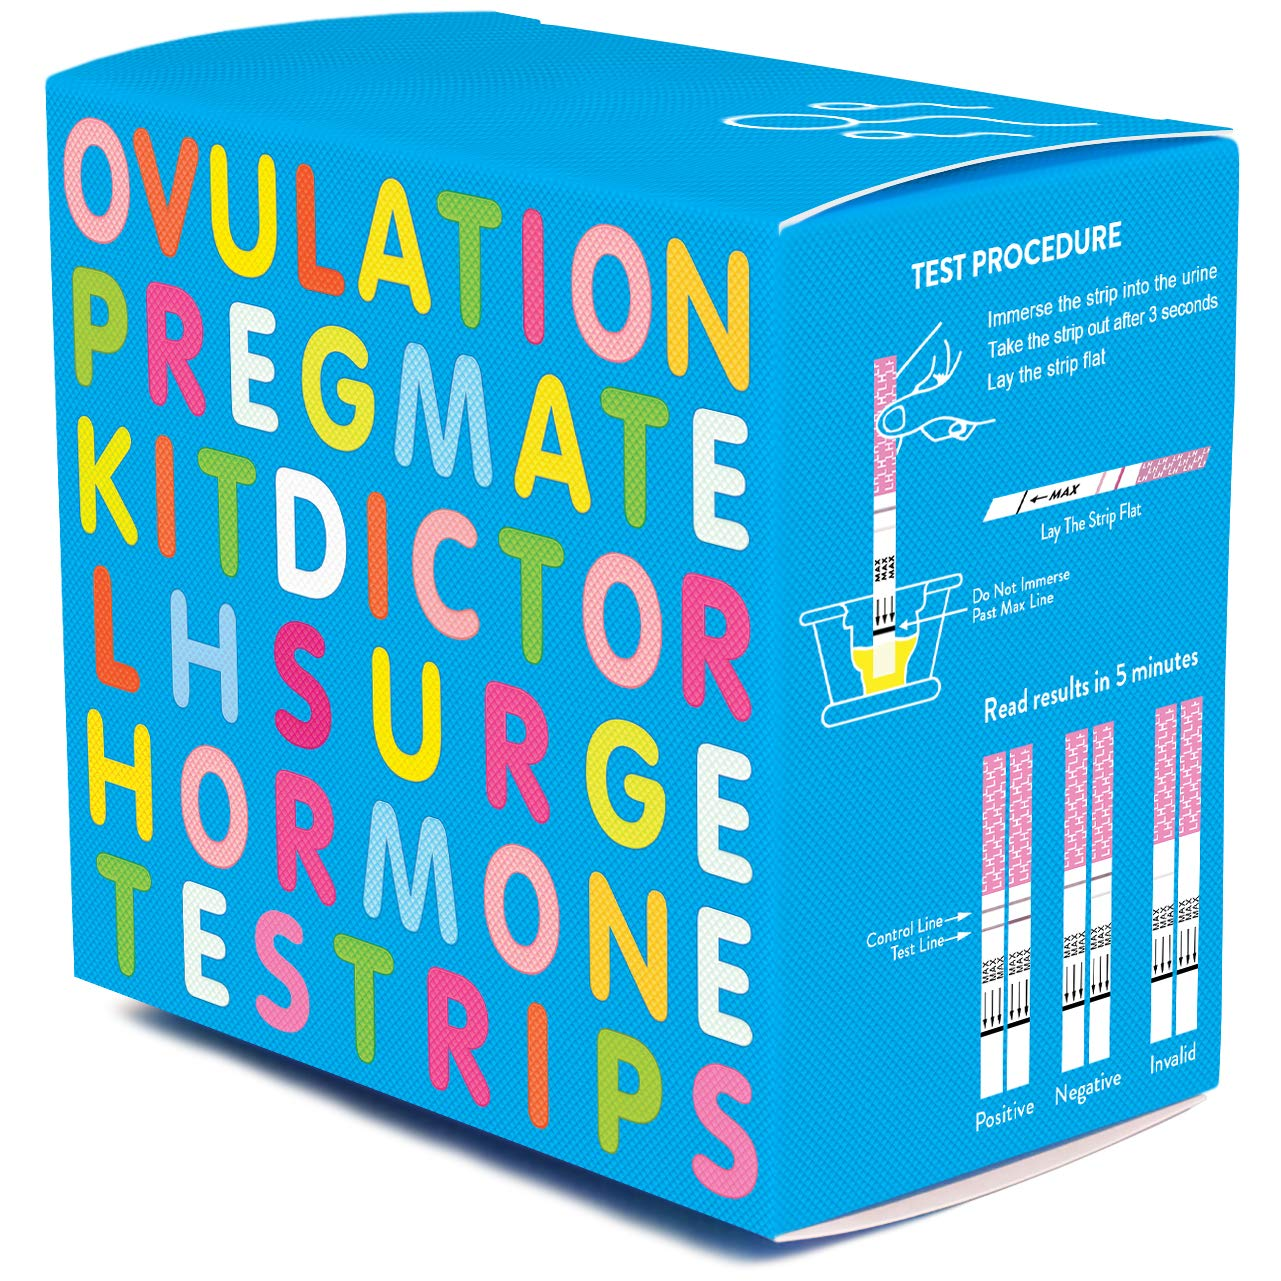 PREGMATE 50 Ovulation Test Strips LH Surge Predictor Kit (50 LH) by PREGMATE